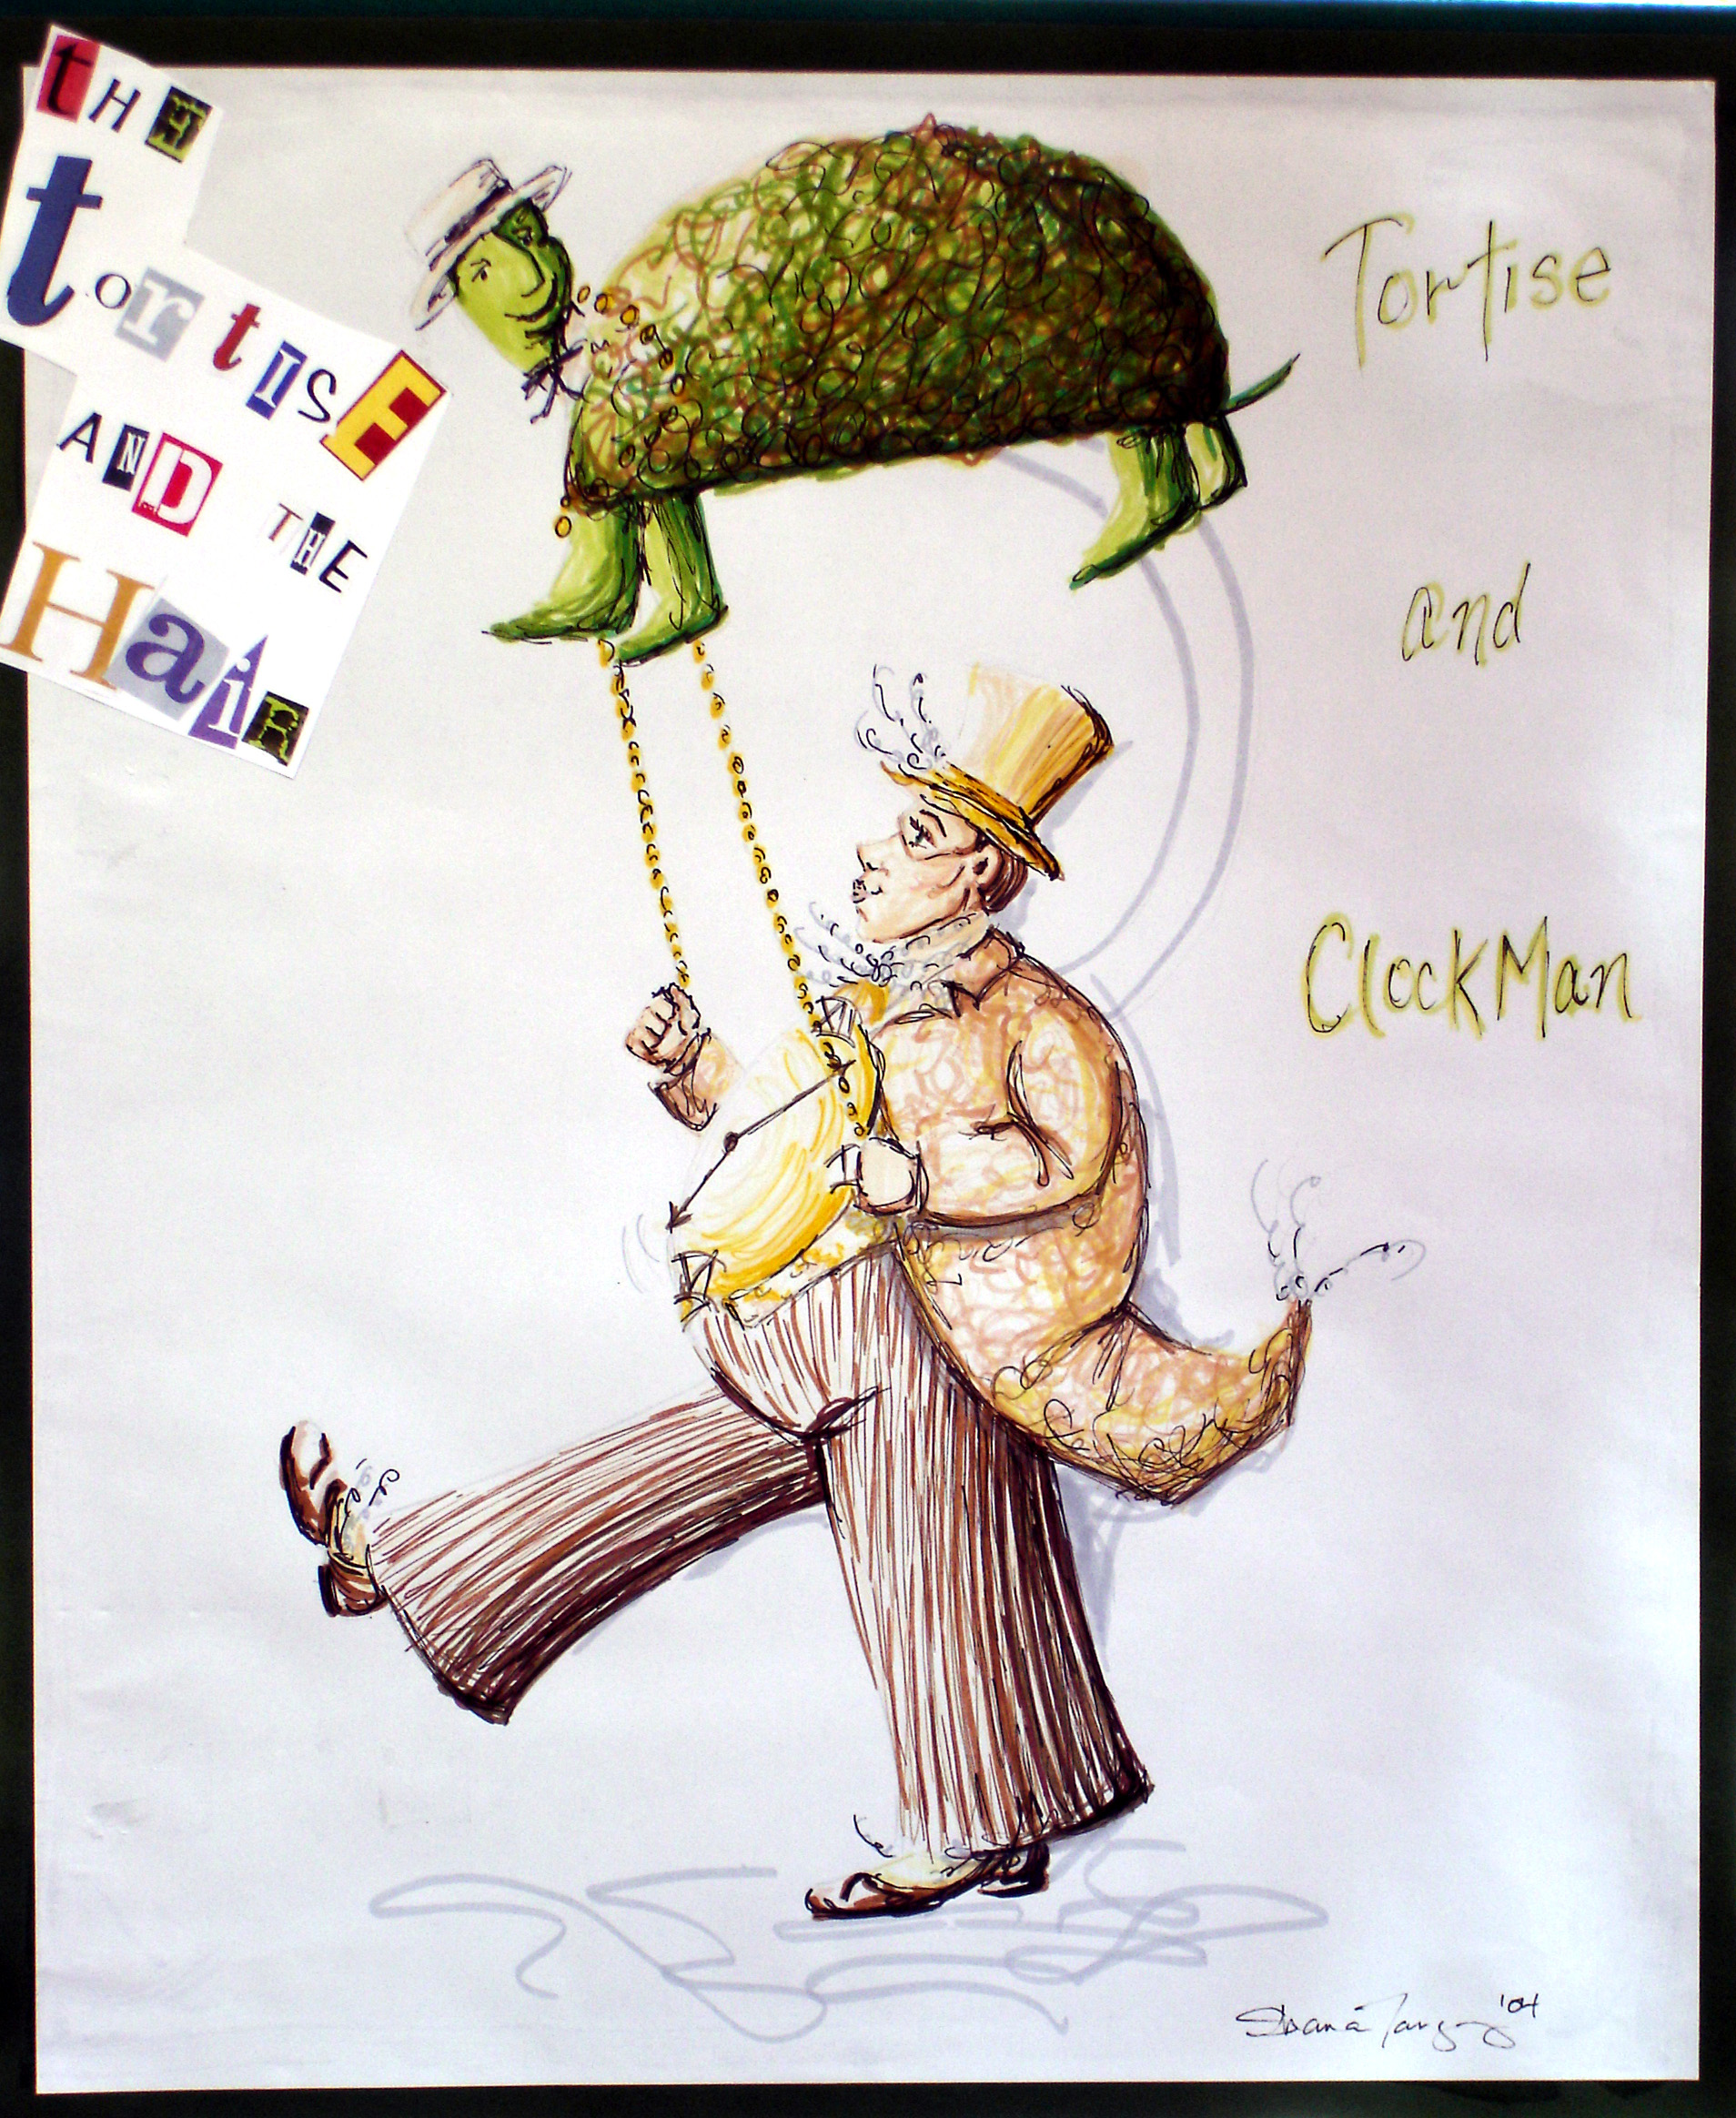 Concept Rendering - Tortoise and Clock Man, Stinky Cheese Man